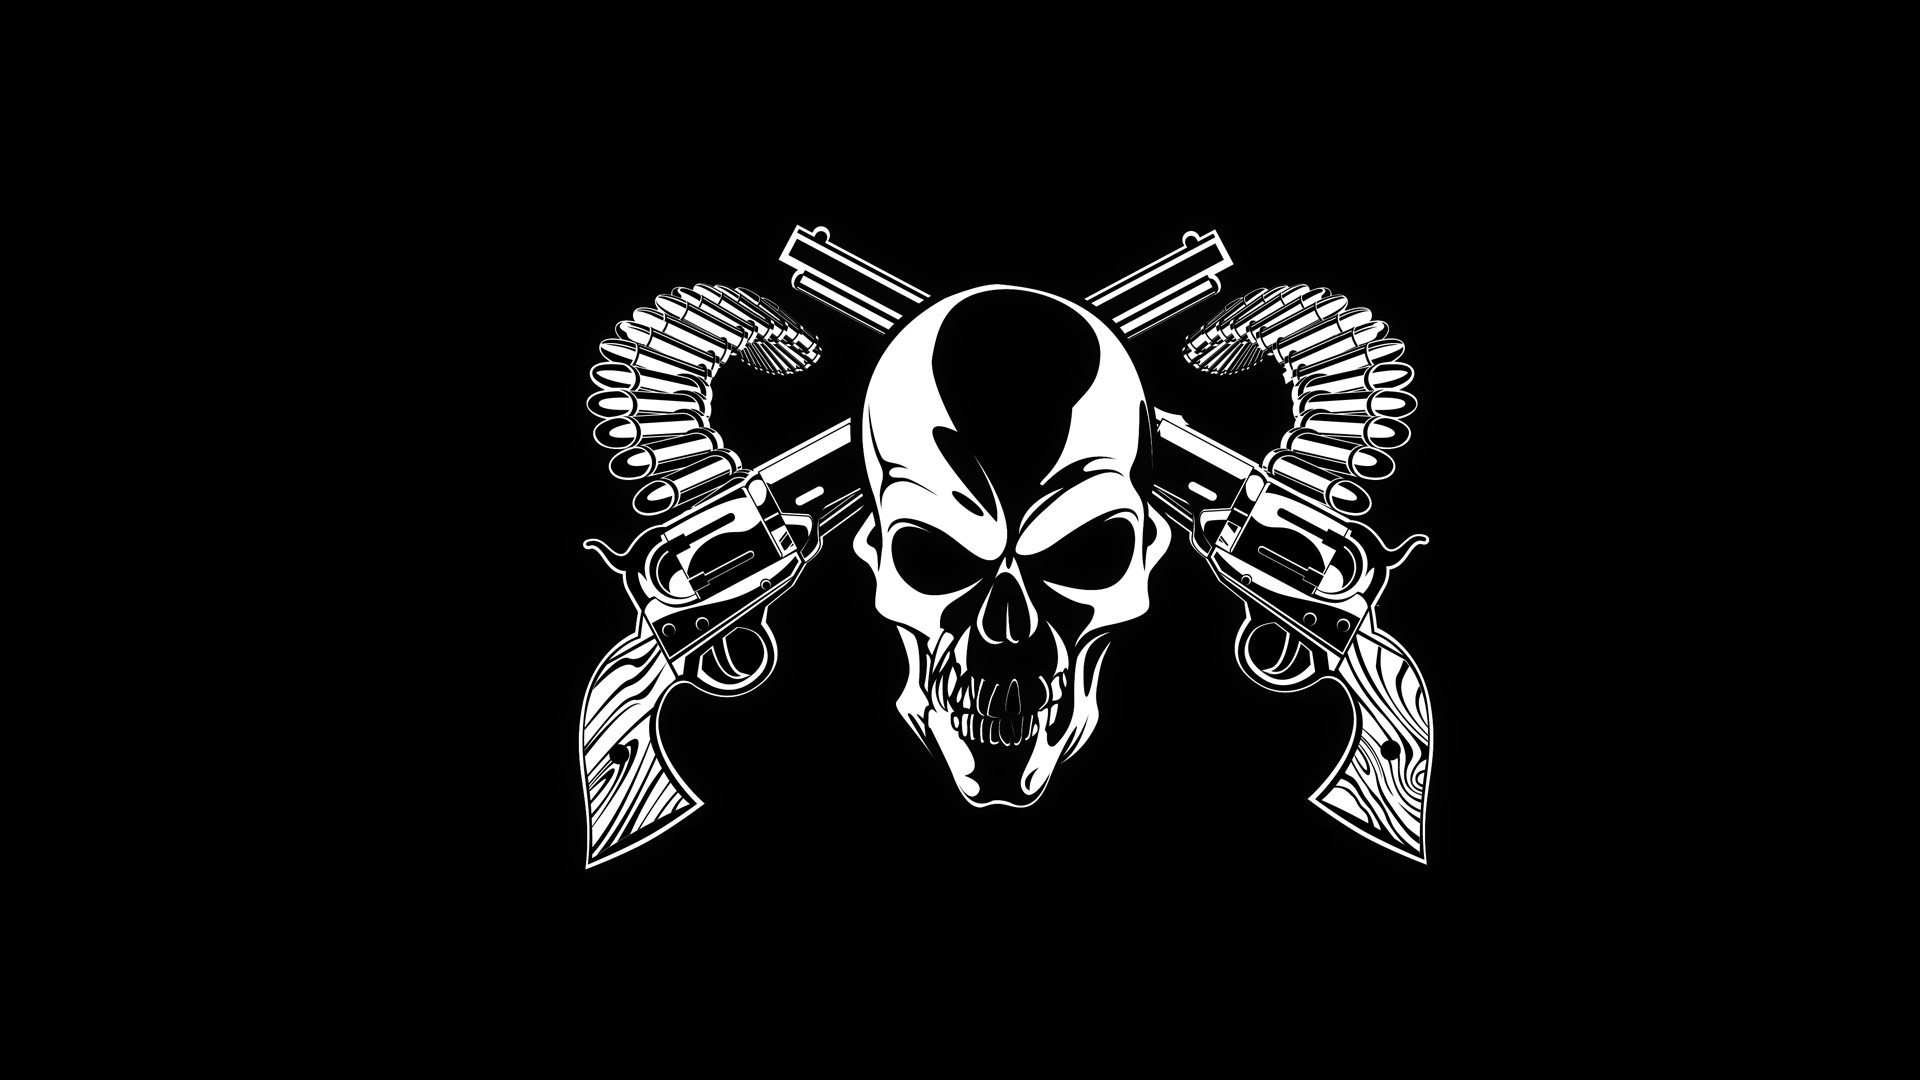 1920x1080 Skull wallpaper background 21592 | Chainimage